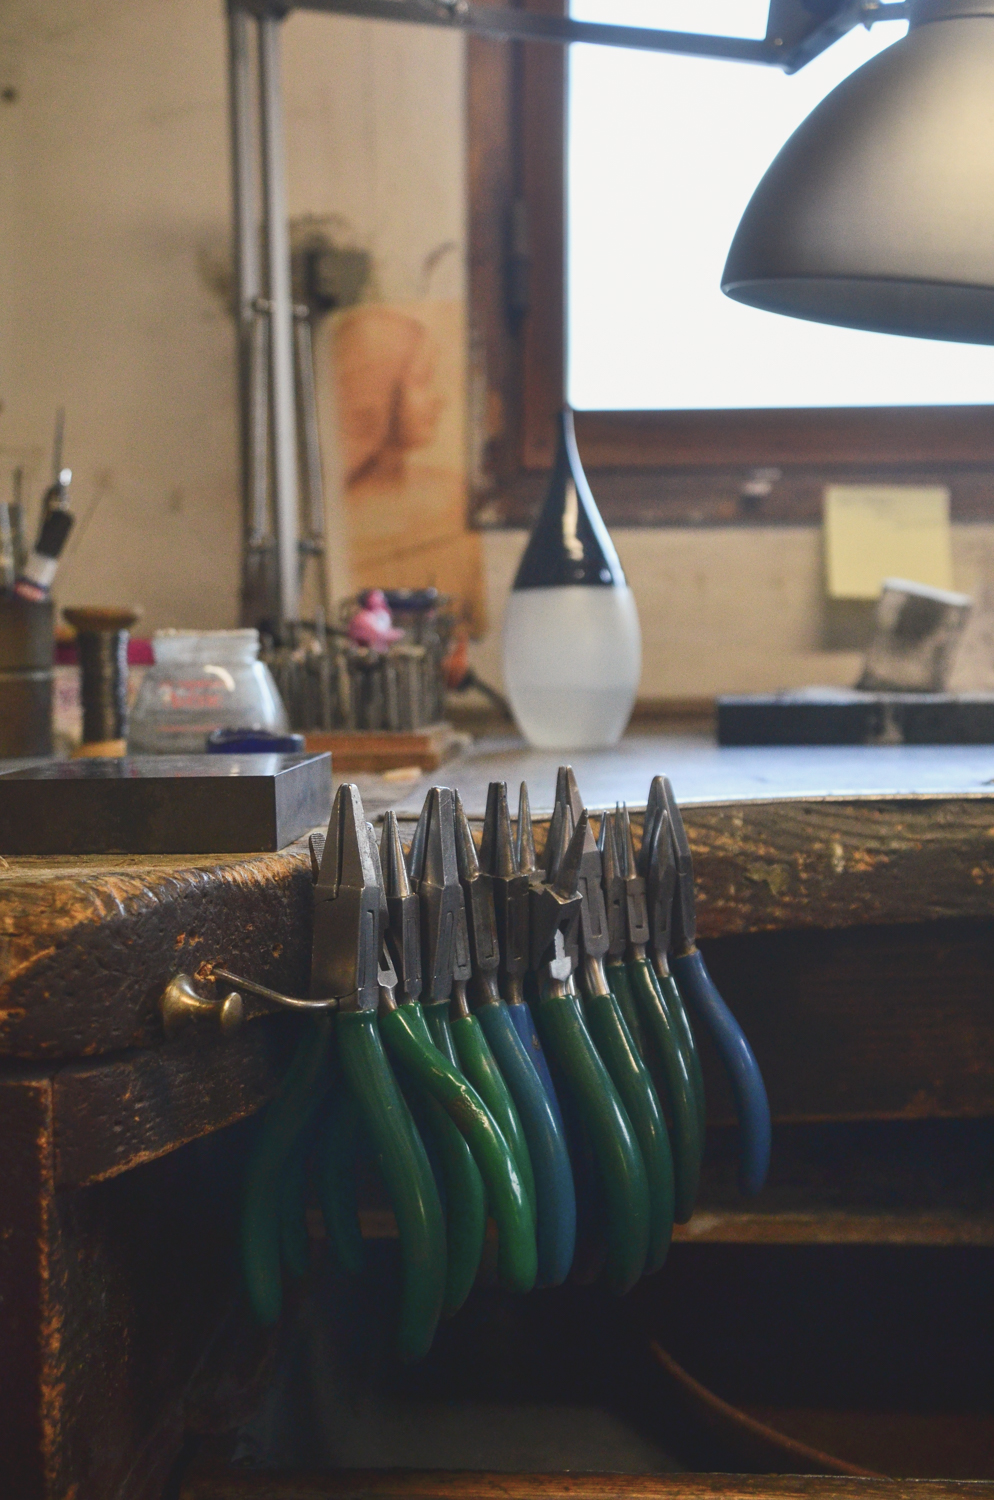 Tools inside the Atelier.